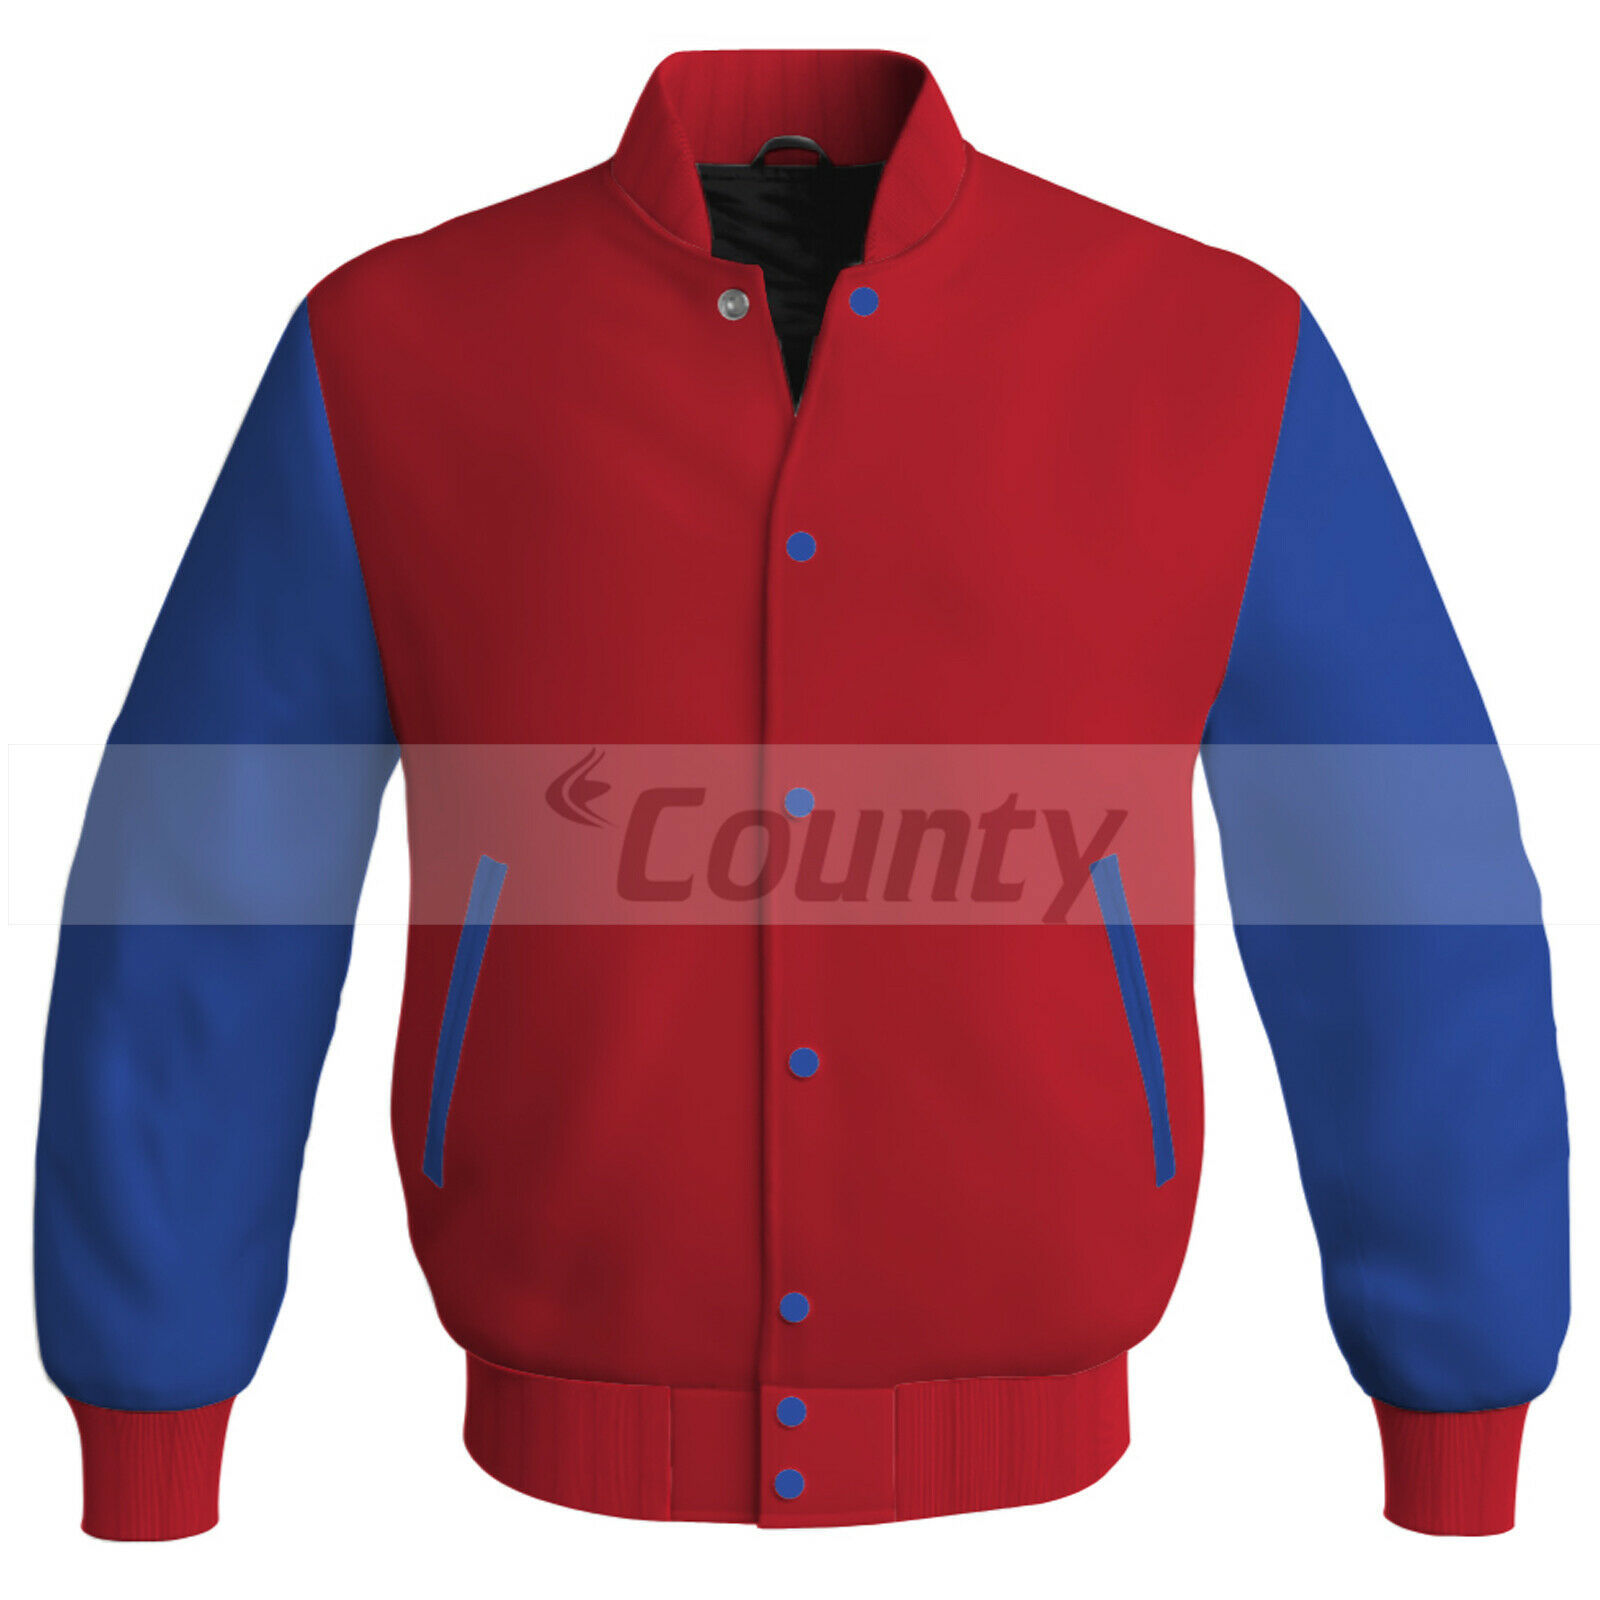 Primary image for Letterman Baseball College Super Bomber Jacket Sports Red Royal Blue Satin